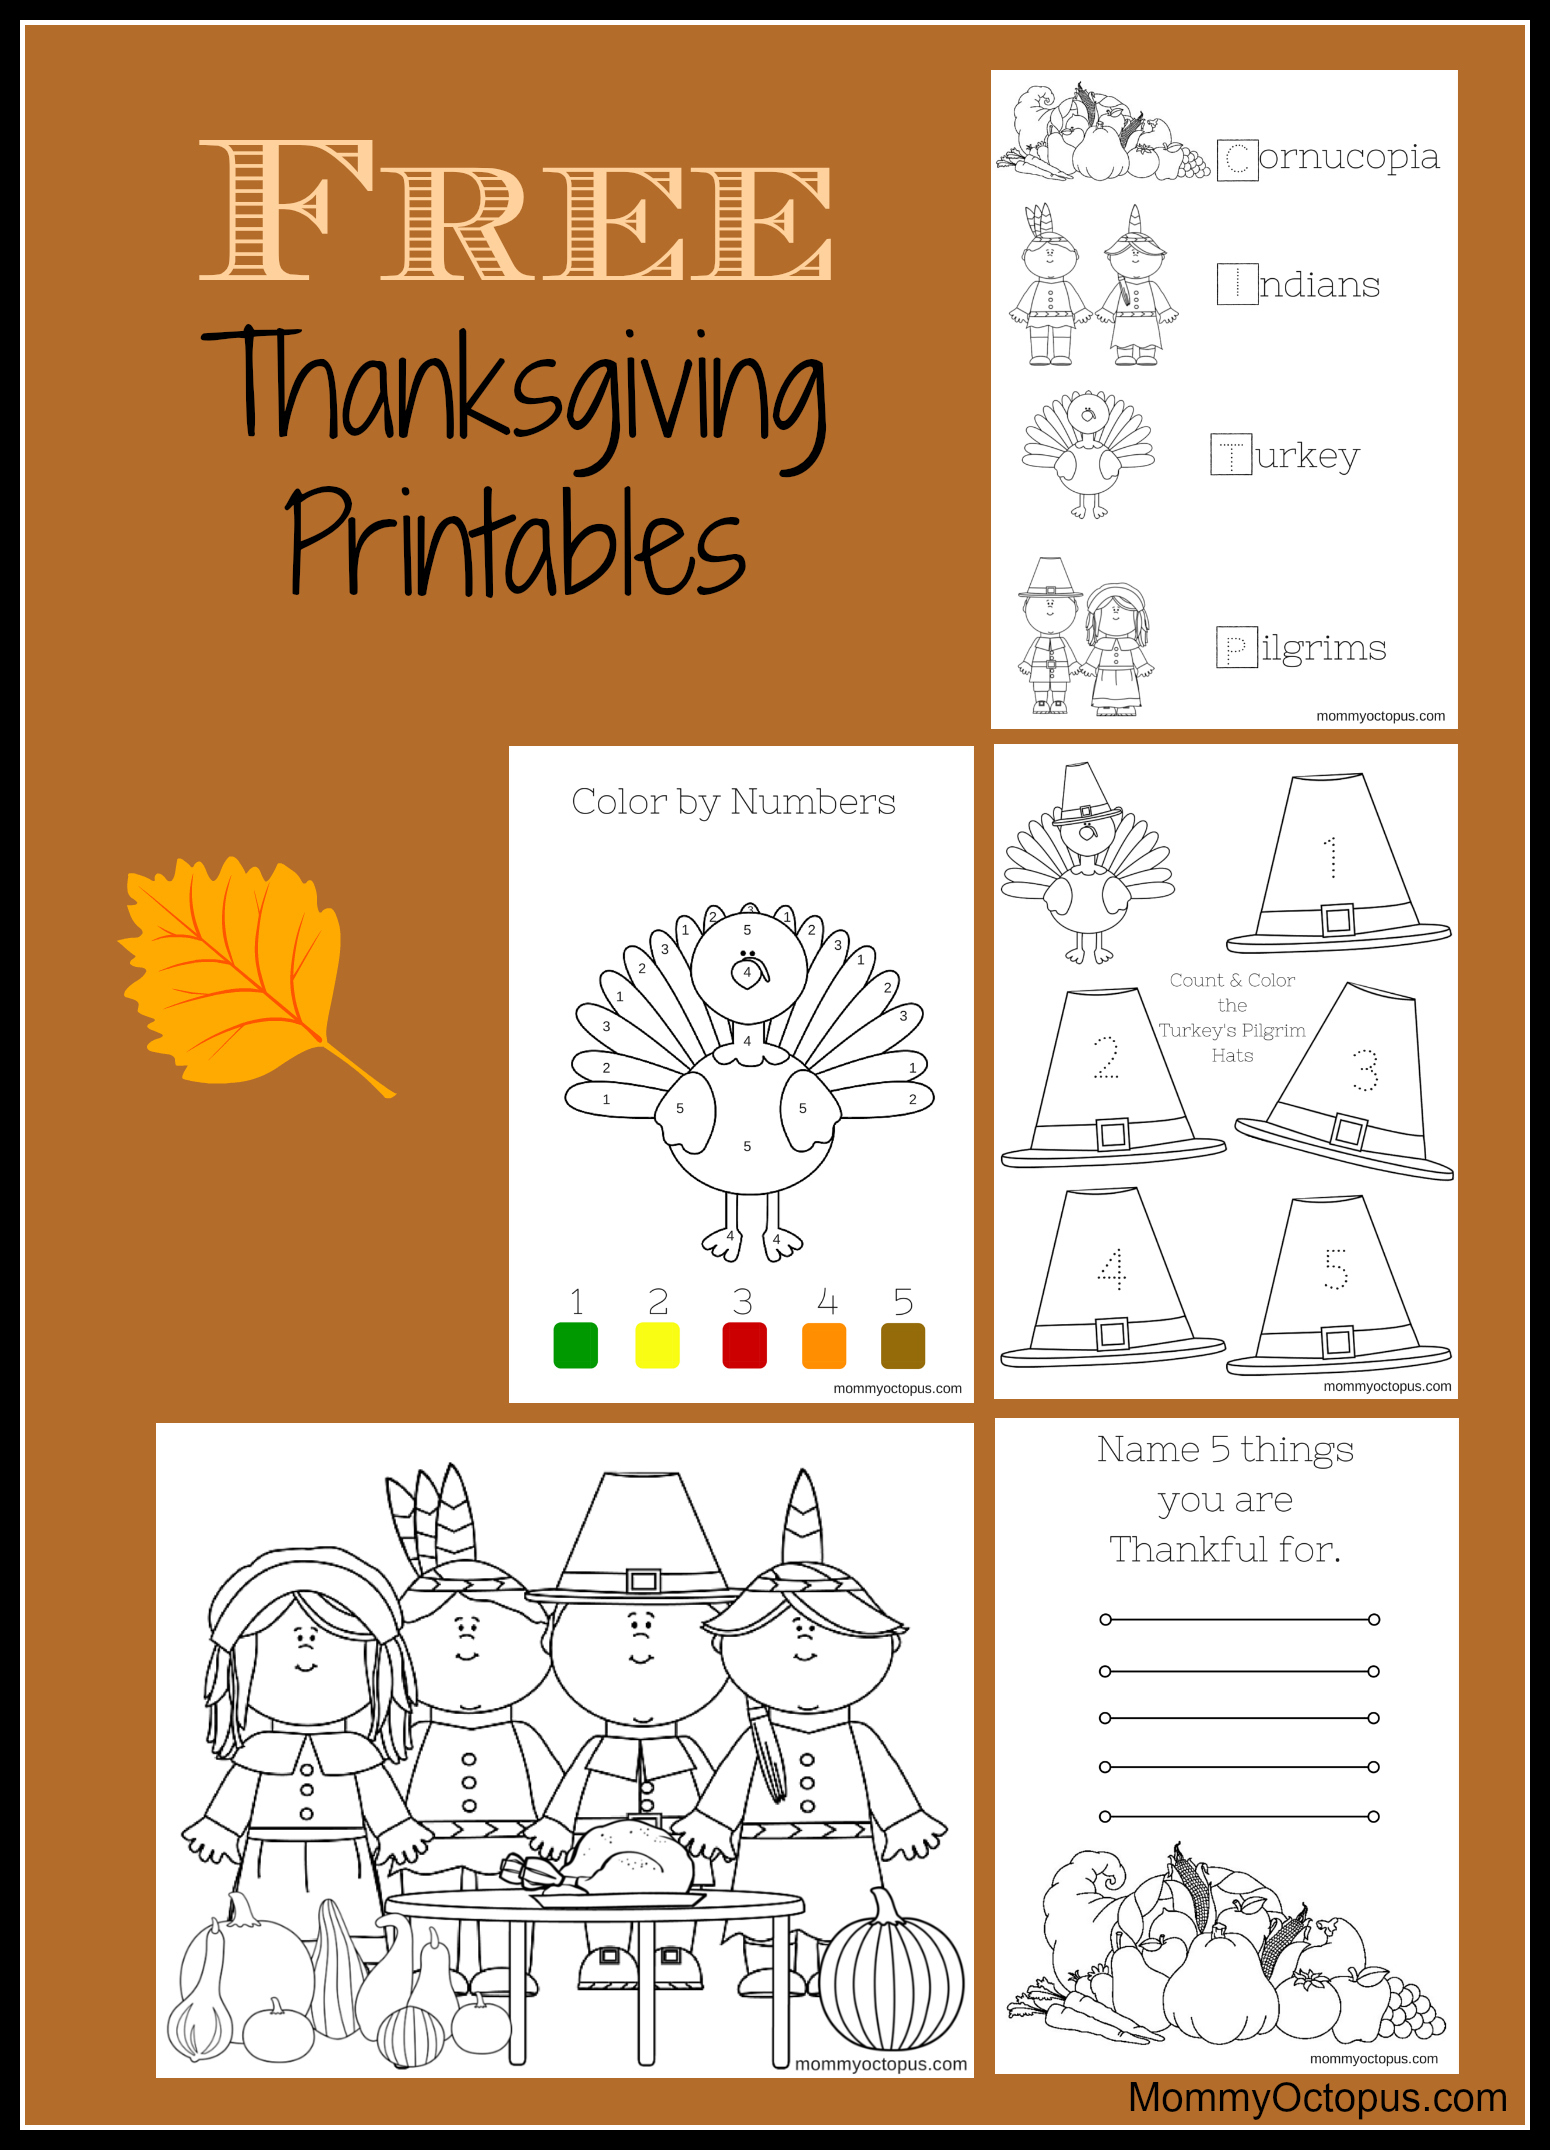 Free Thanksgiving Printable Activity Sheets! - Mommy Octopus - Free Printable Kindergarten Thanksgiving Activities